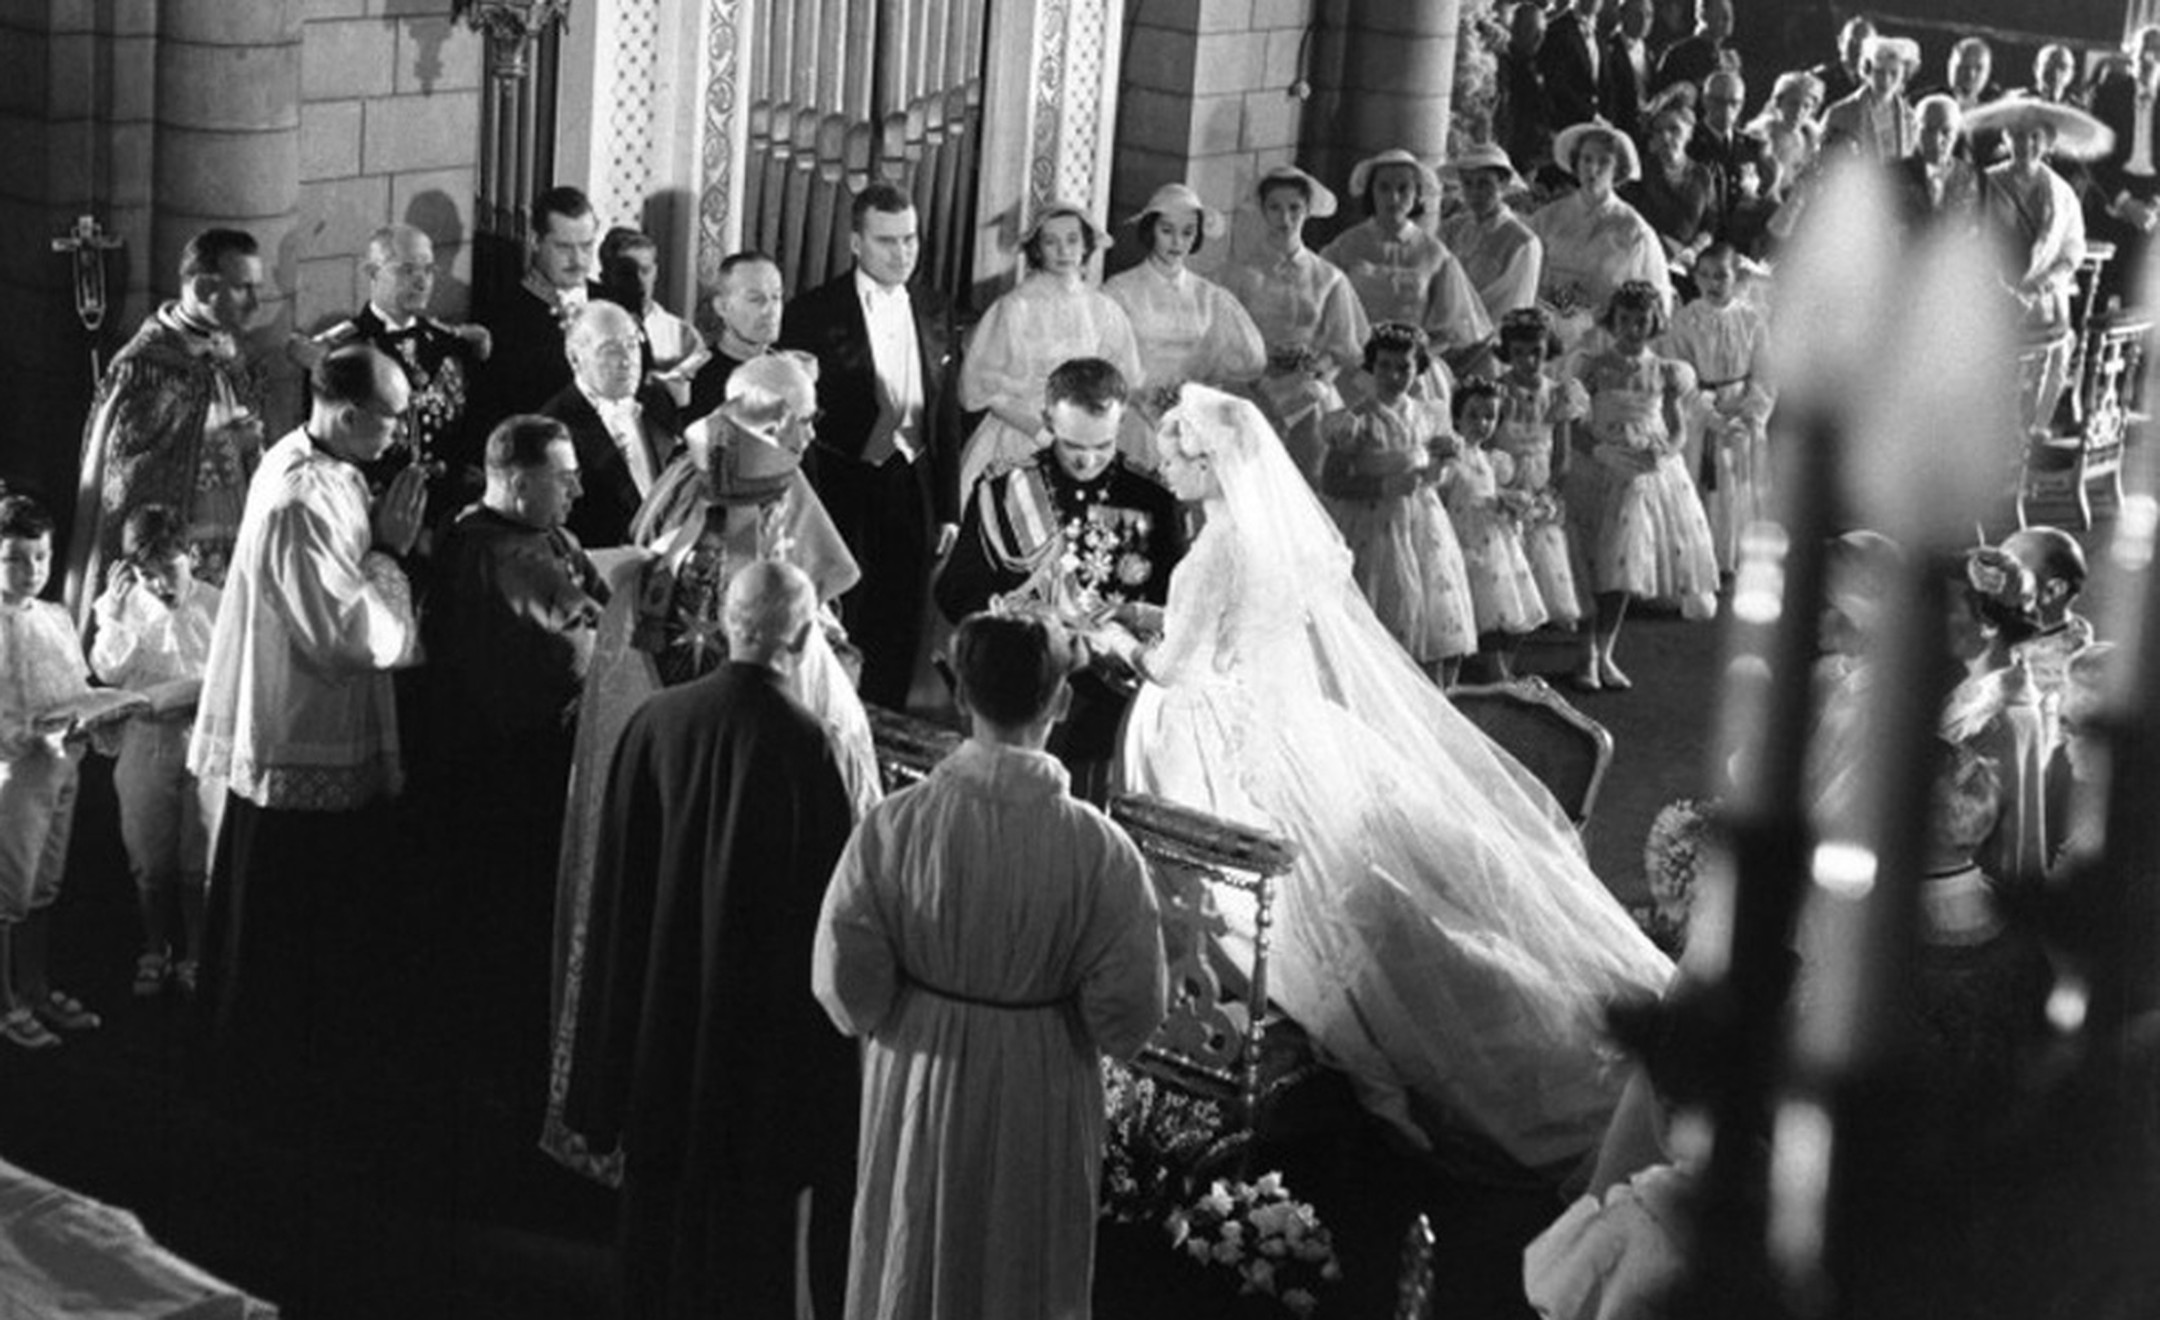 The religious marriage ceremony of Prince Rainier III and Princess Grace in Monte Carlo 1956. Photo: The Prince's Palace Monaco